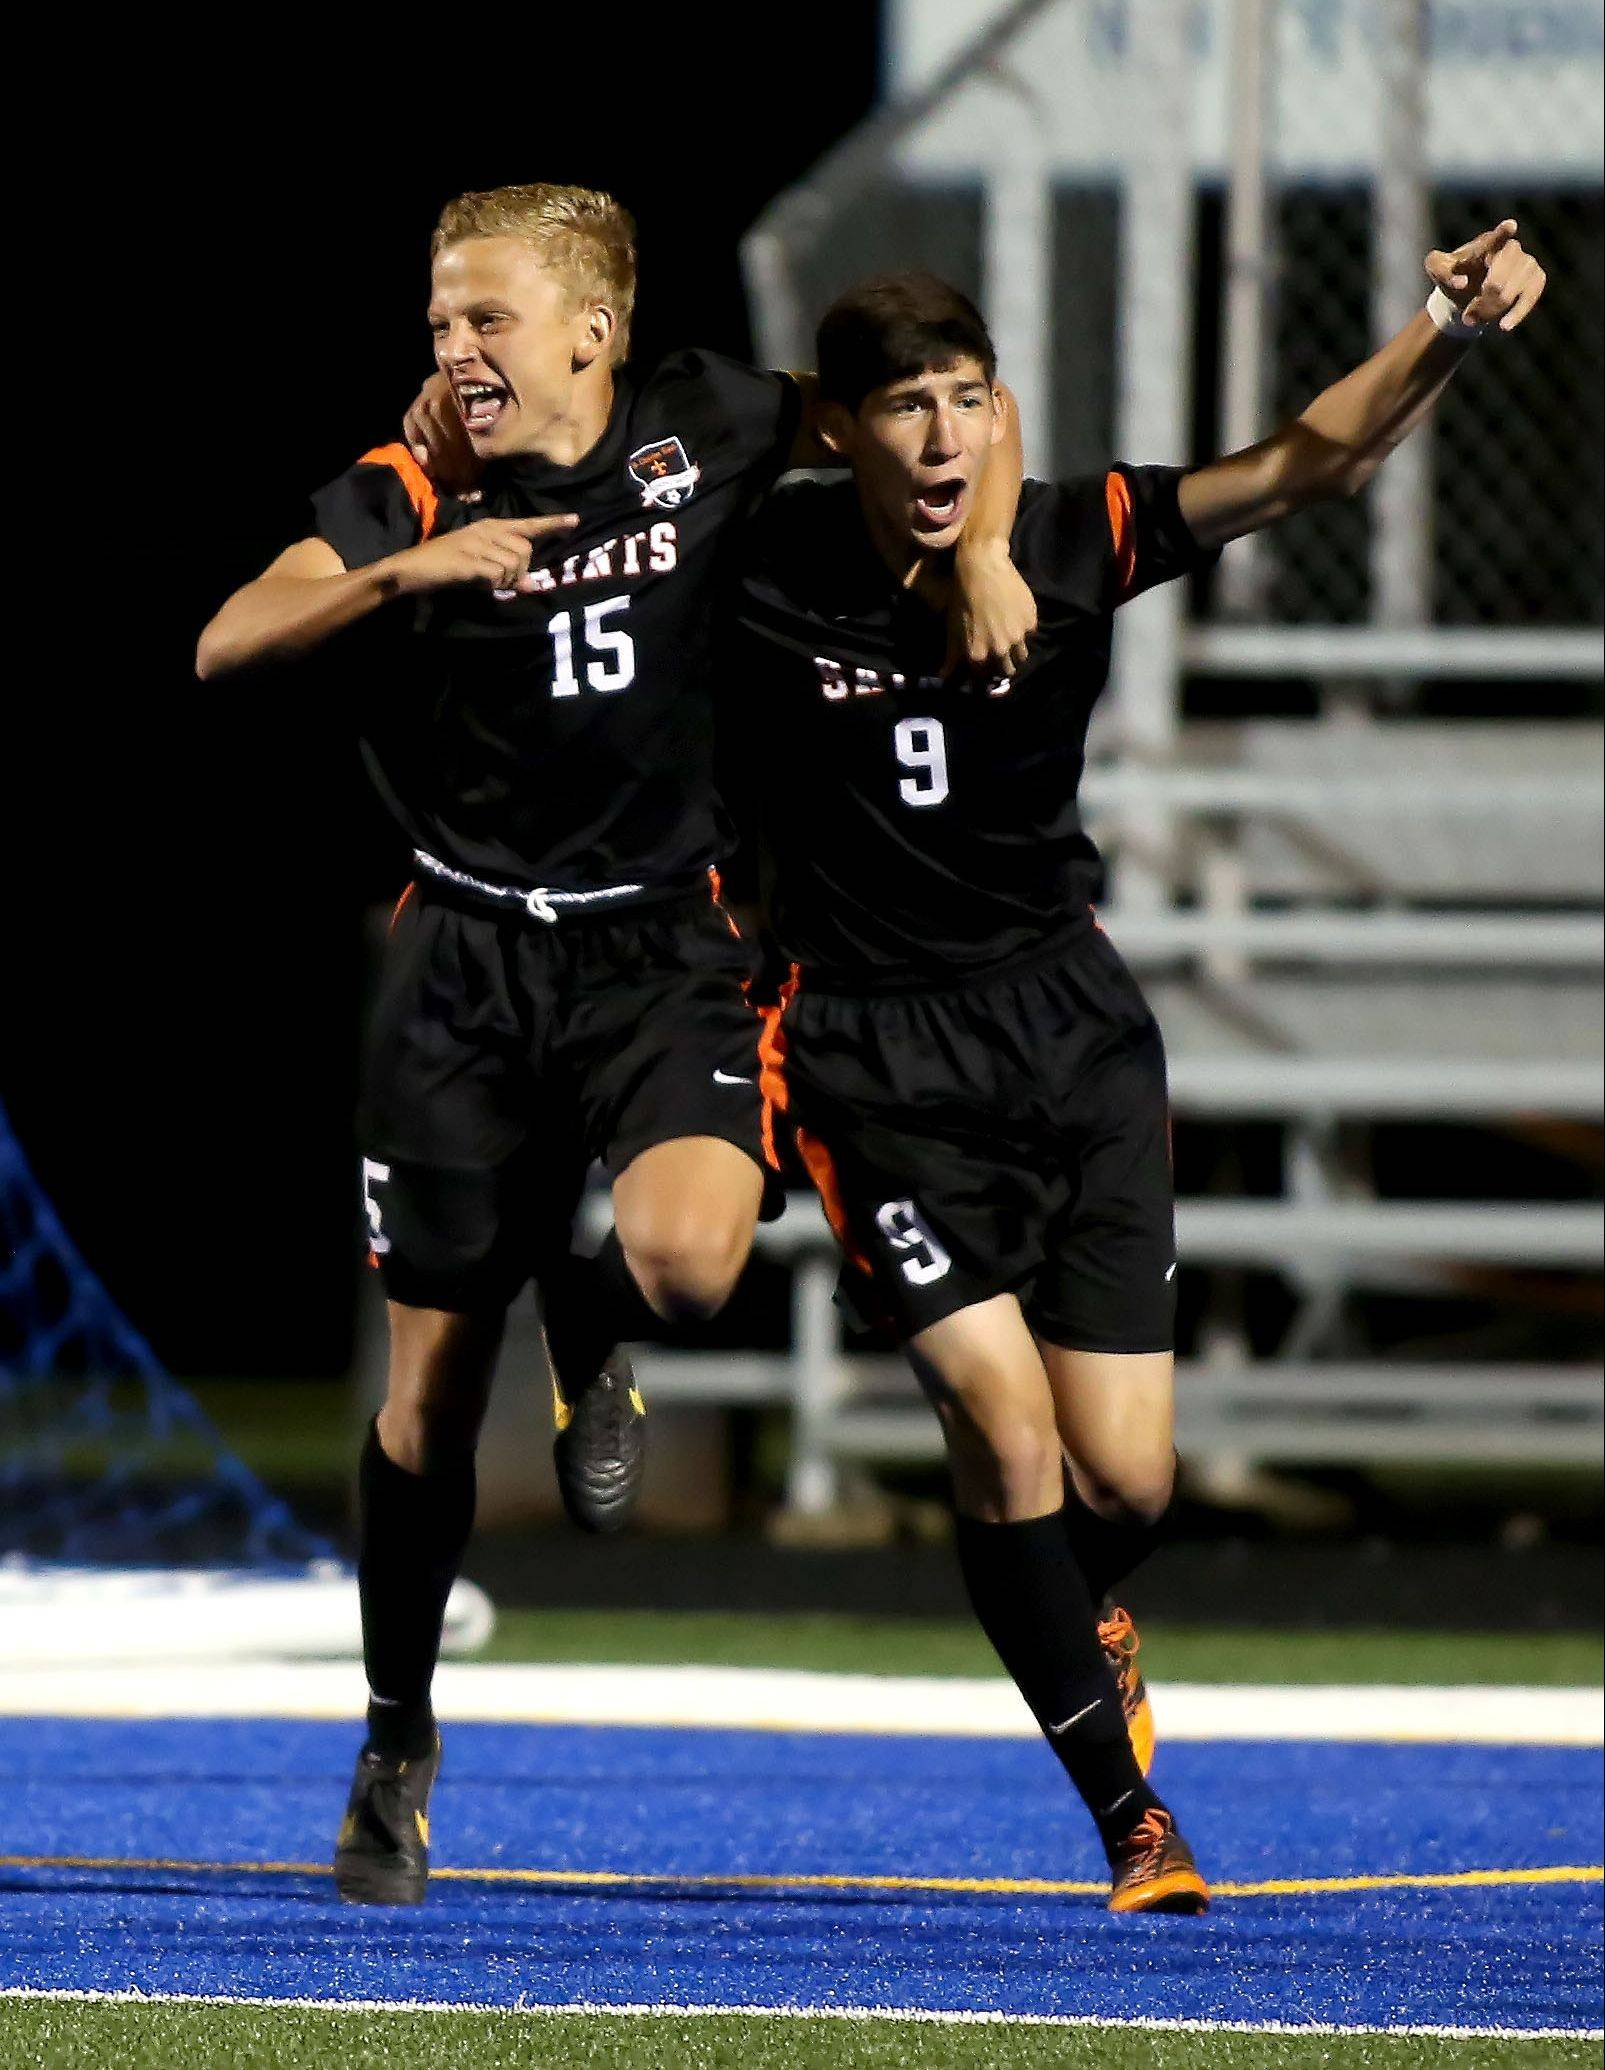 Kevin Heinrich, left and Taylor Ortiz, right, of St. Charles East, celebrate a goal by Heinrich within the first minute of play in Geneva on Tuesday.